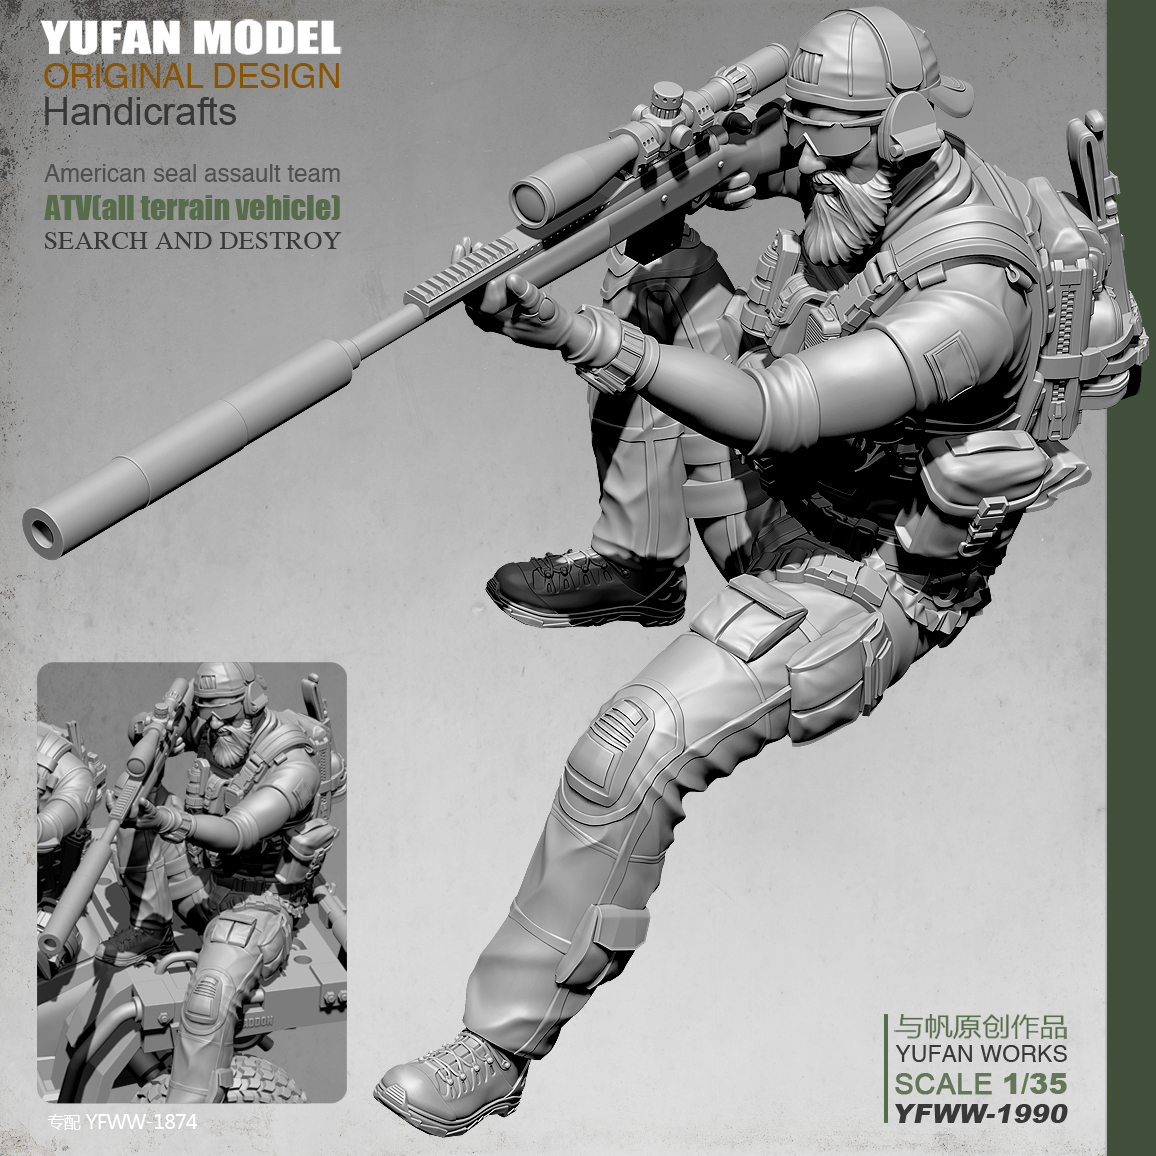 YUFan Model And Sail Original 1/35 US Sniper Resin Soldier YFWW-1990 KNL Hobby